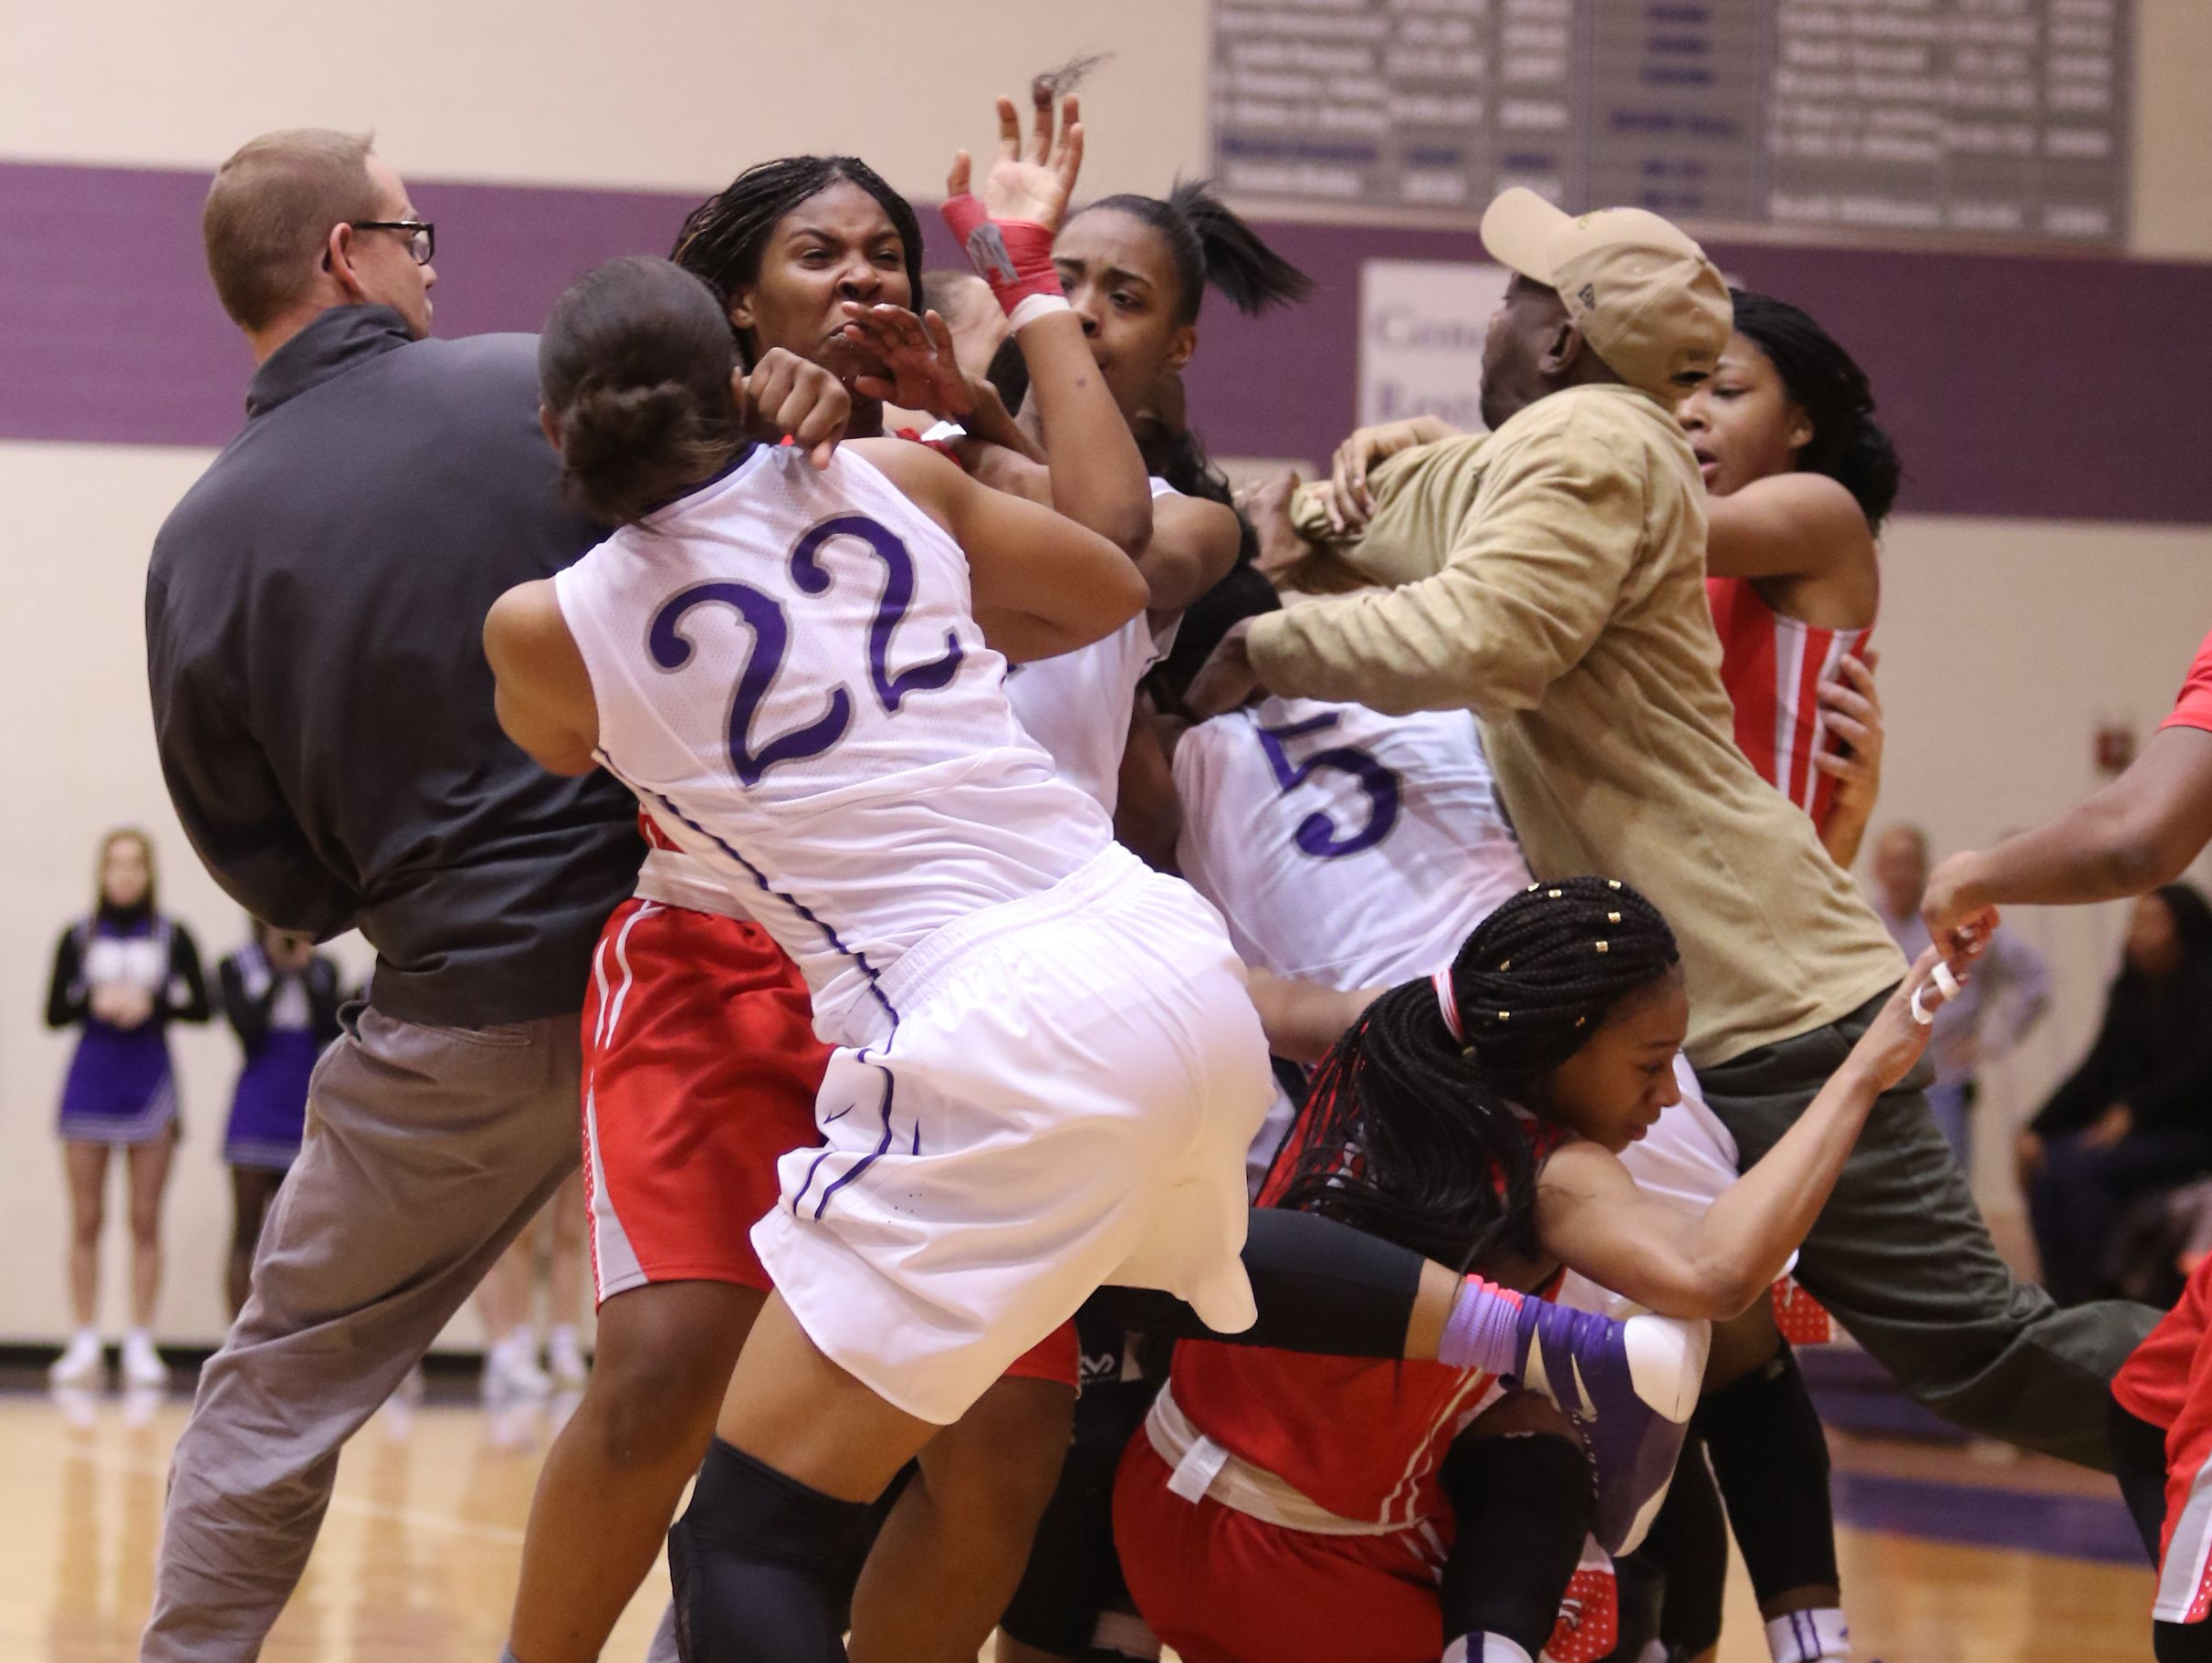 Players from Ben Davis and Pike fight in the fourth quarter of the game as fans and players spilled on to the court. (Photo: Indianapolis Star)